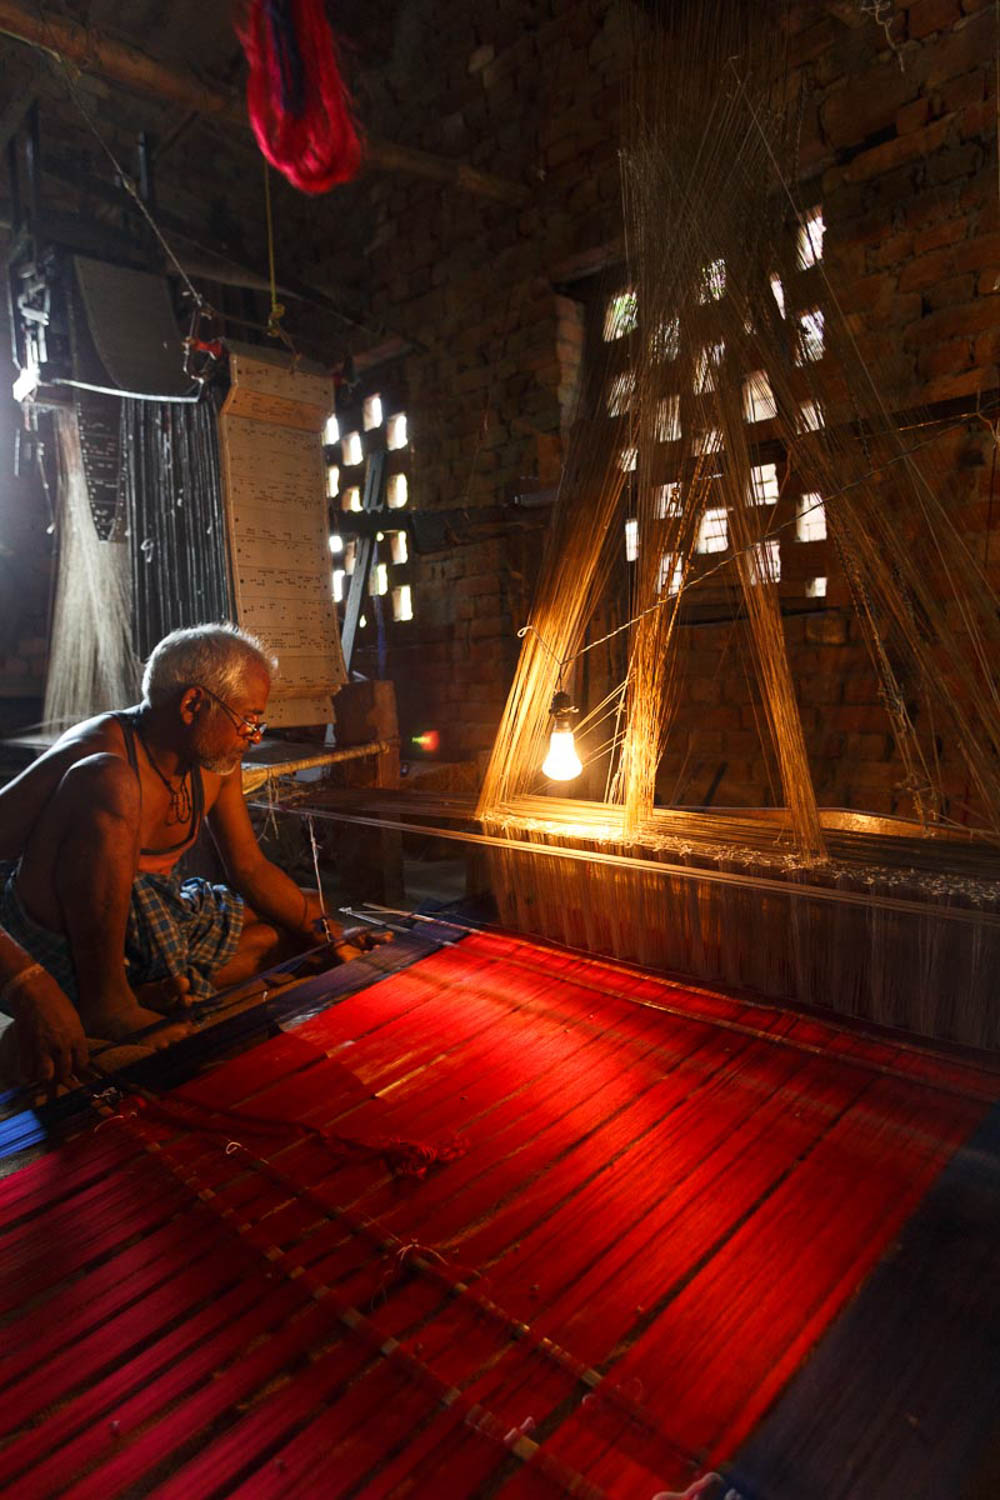 Traditional silk weaving is still done on hand looms